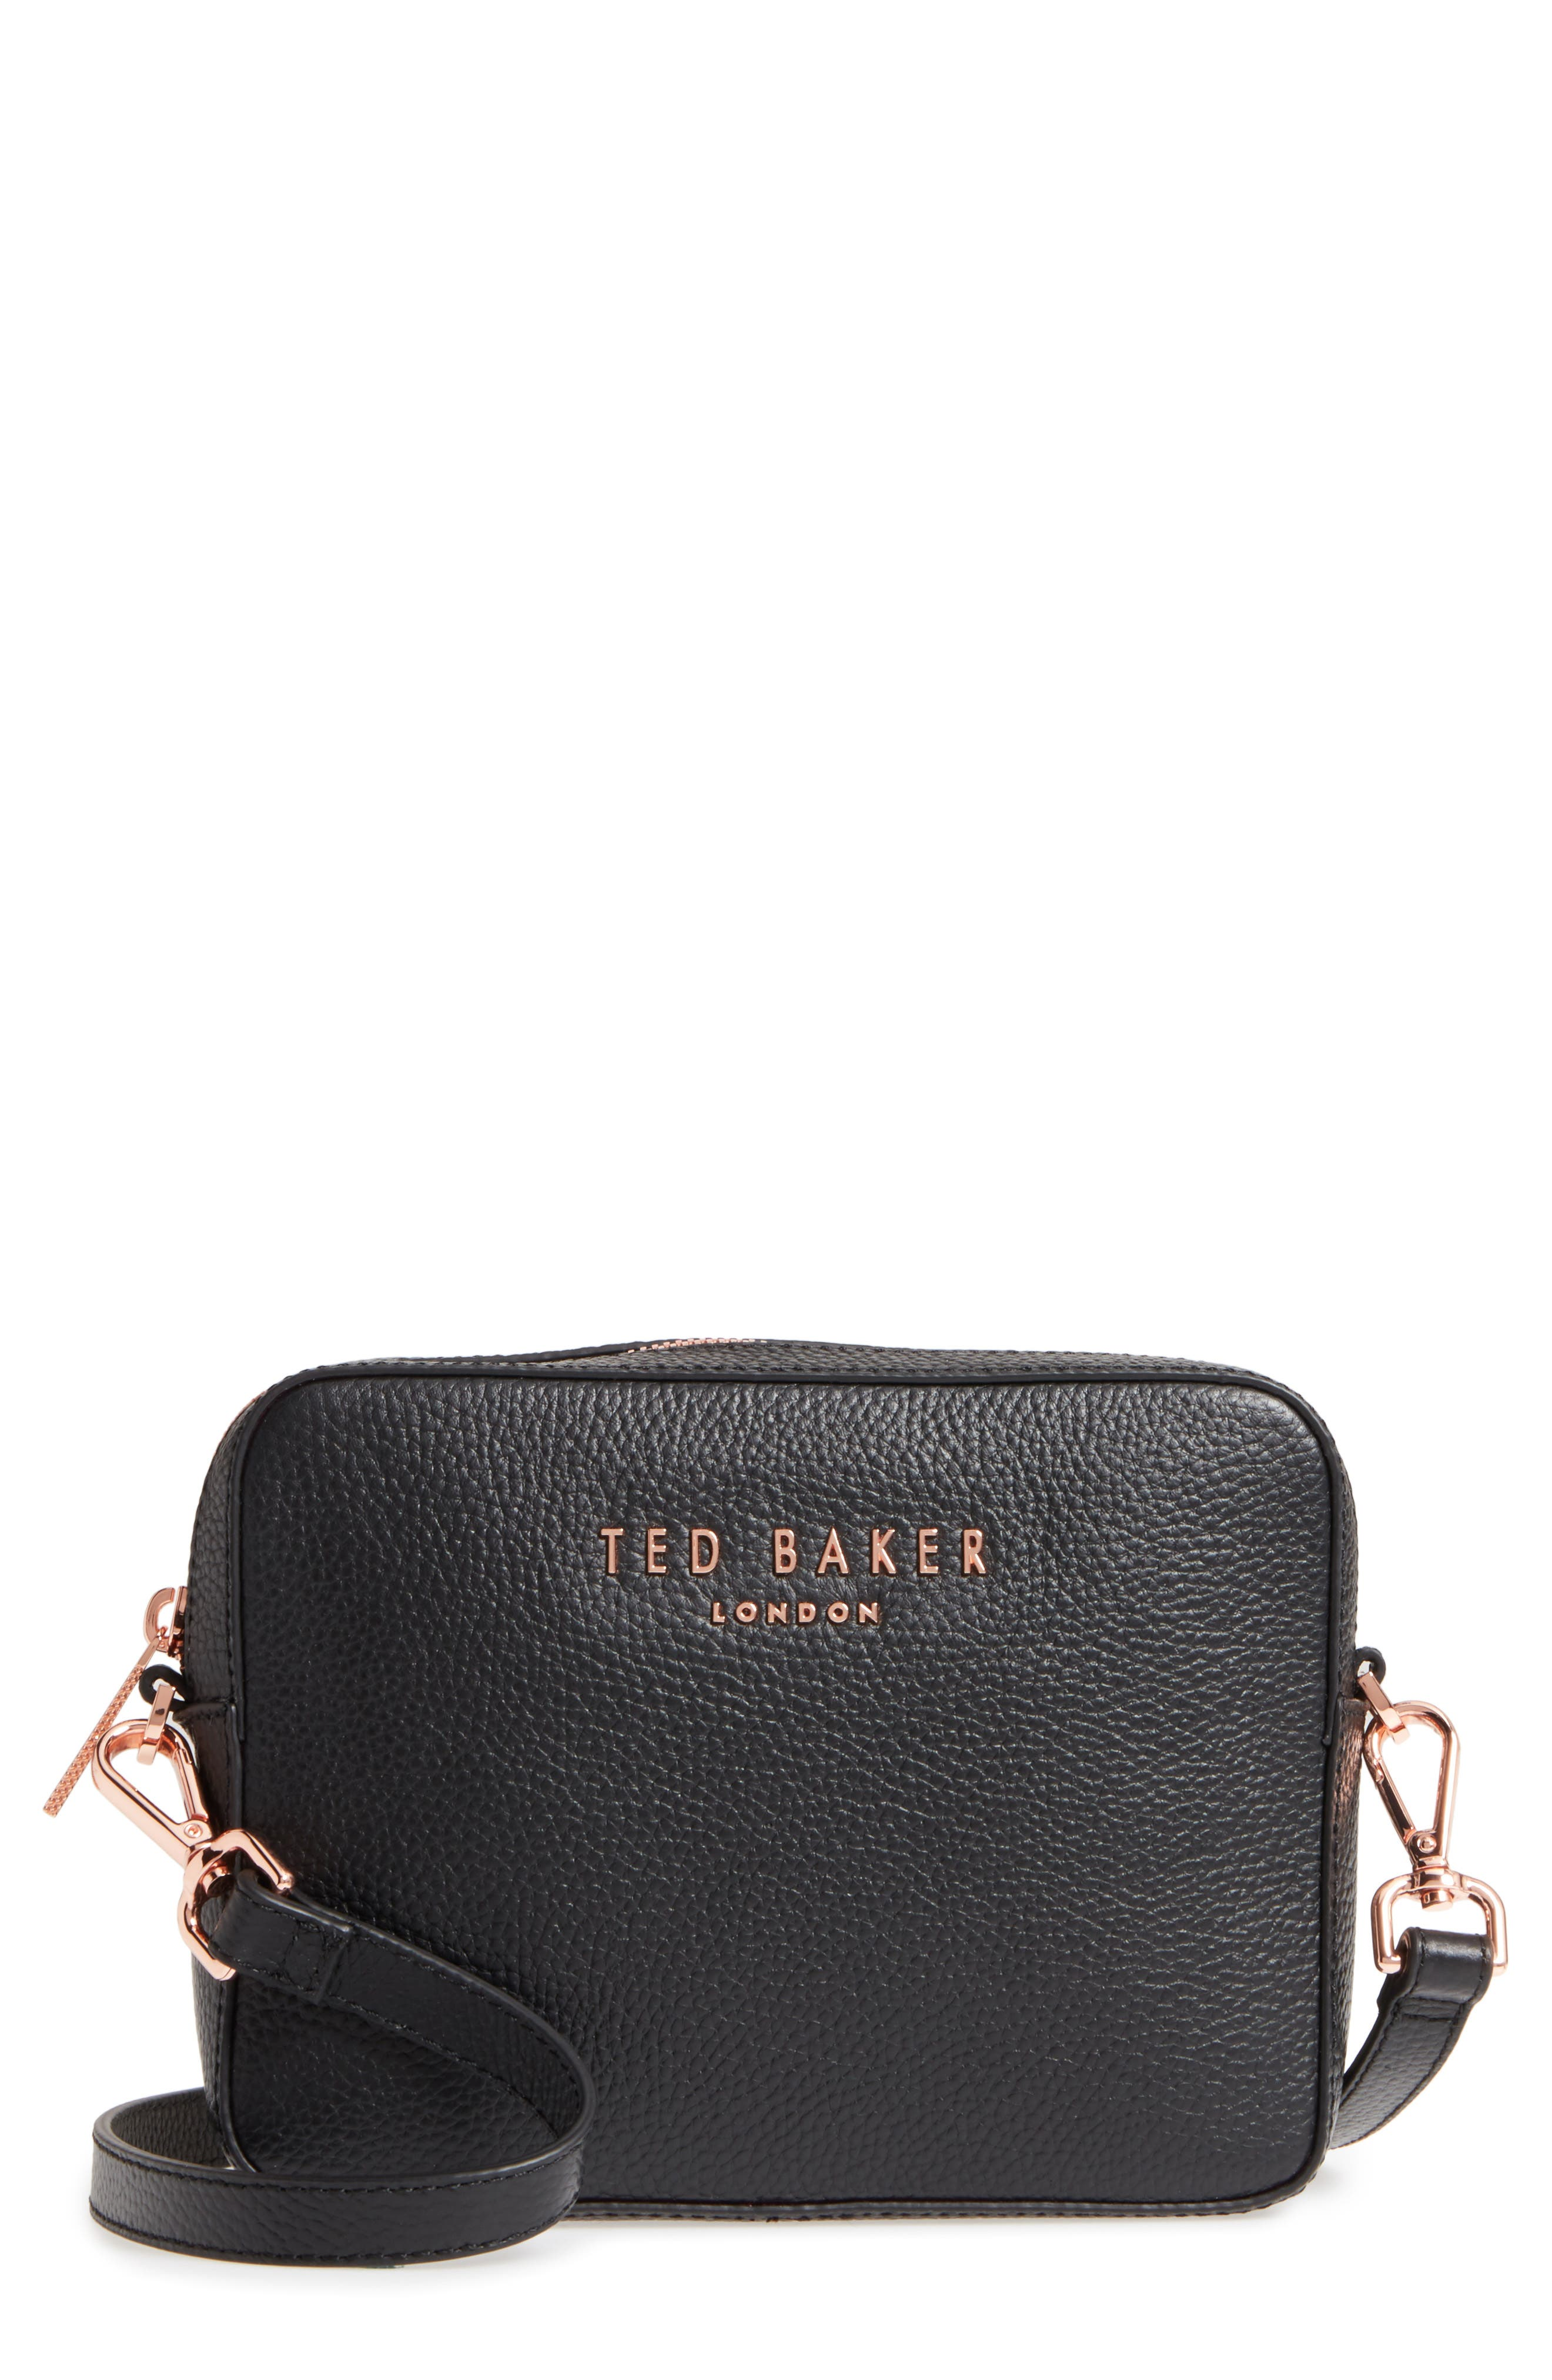 Alternate Image 1 Selected - Ted Baker London Susi Leather Crossbody Bag